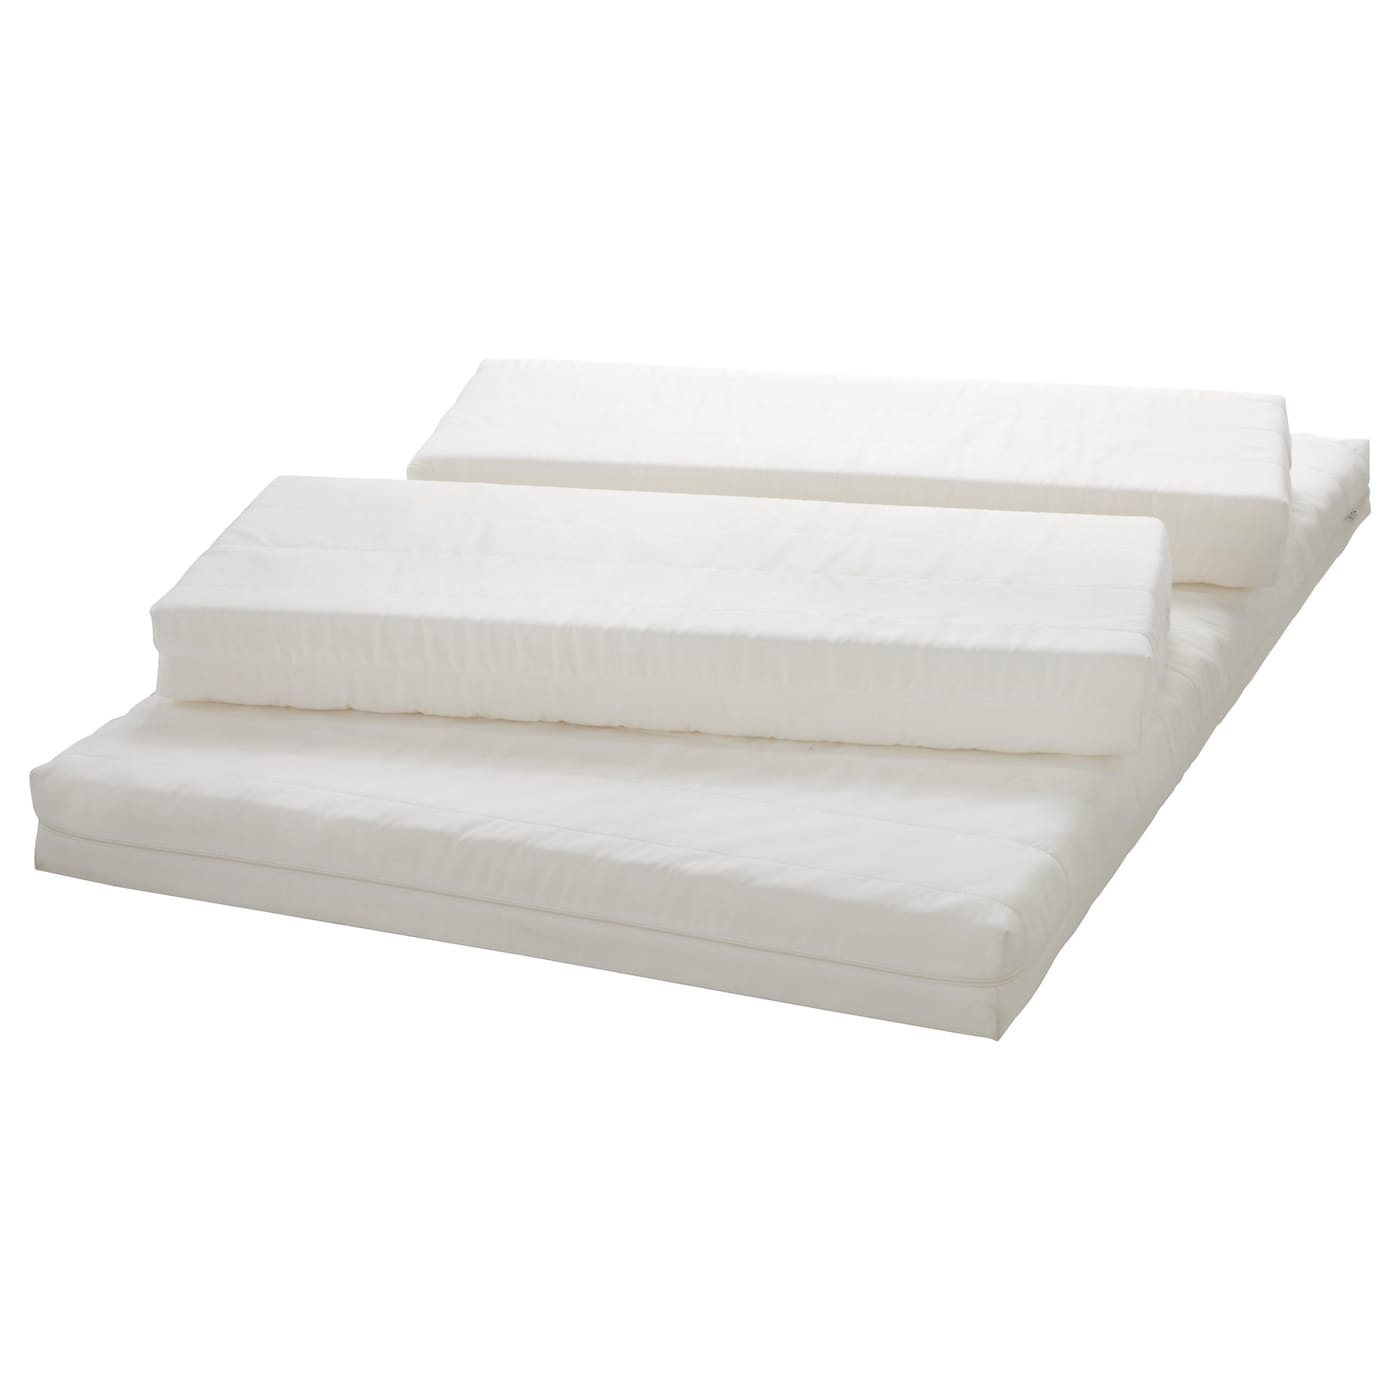 Ikea Udden Herd Anschließen ~ VYSSA SNOSA Mattress for extendable bed White 80×200 cm  IKEA